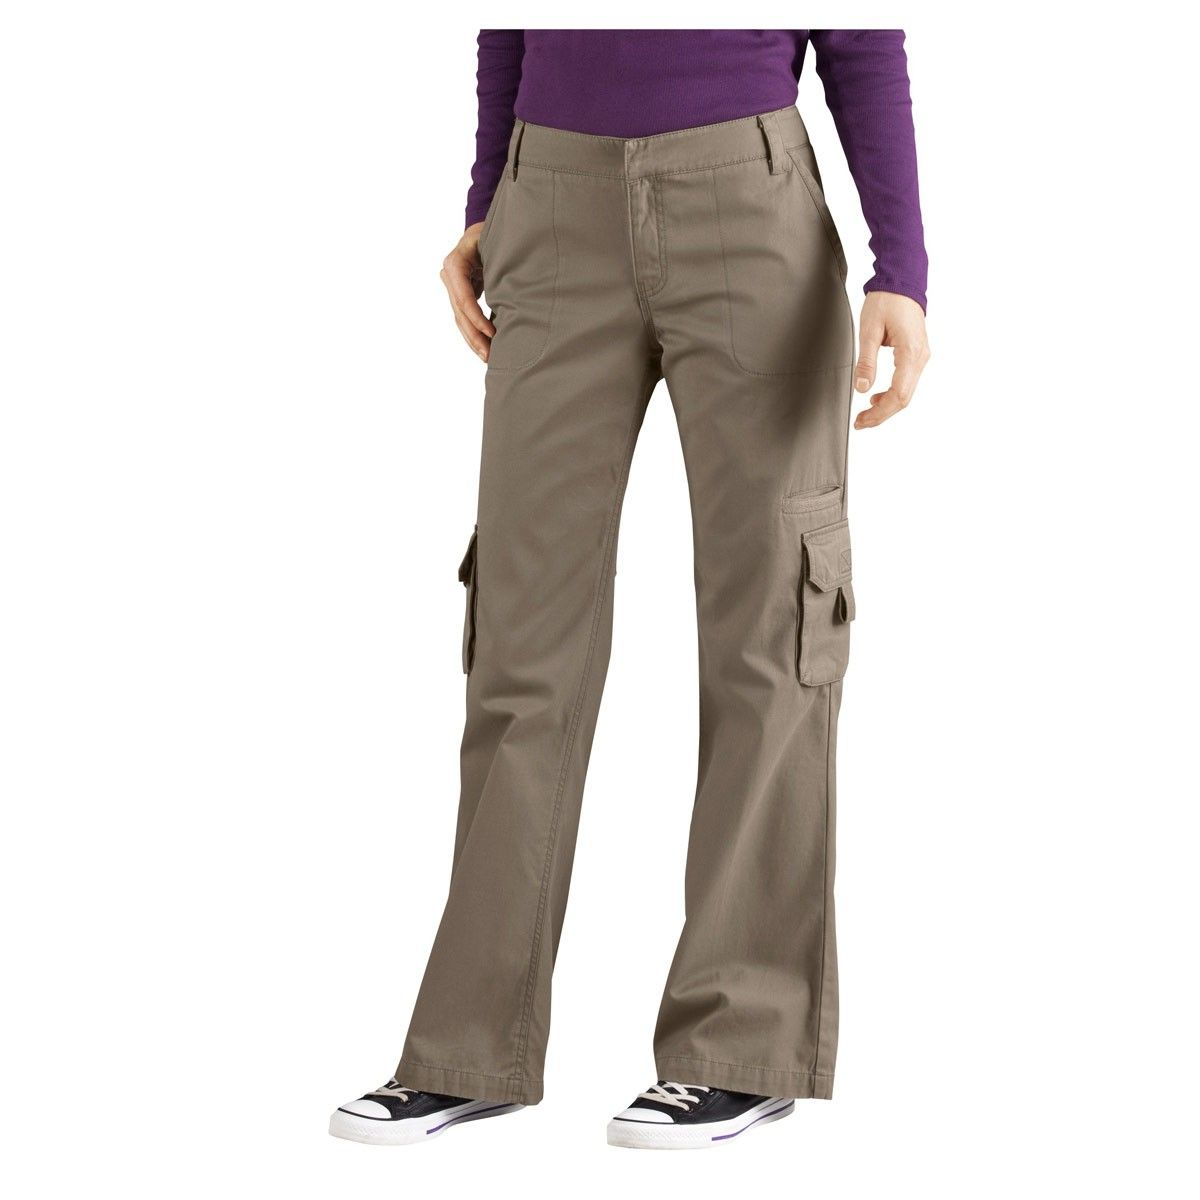 3dee549195b Dickies Women s Relaxed Fit Straight Leg Cargo Pants - FP777